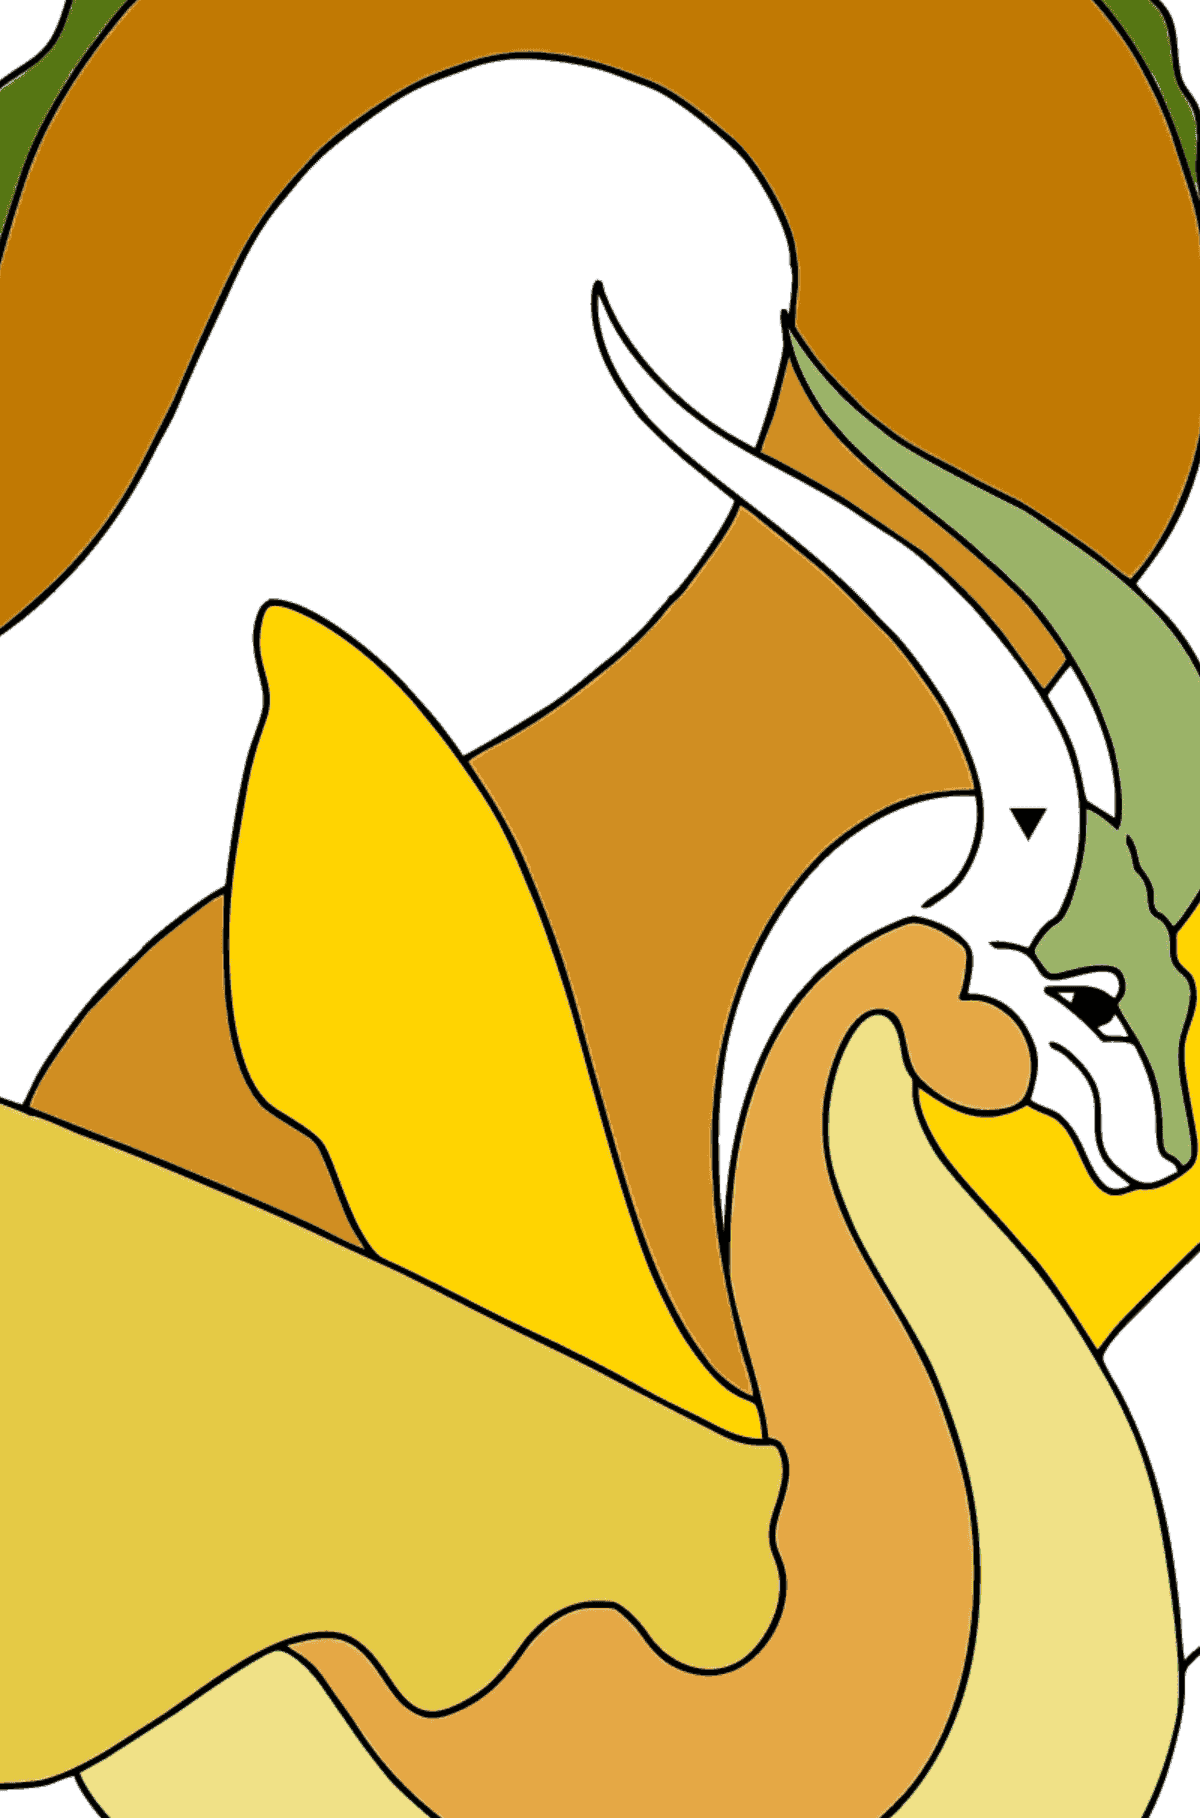 Coloring Page - A Dragon with an Orange Tail - Coloring by Symbols for Children